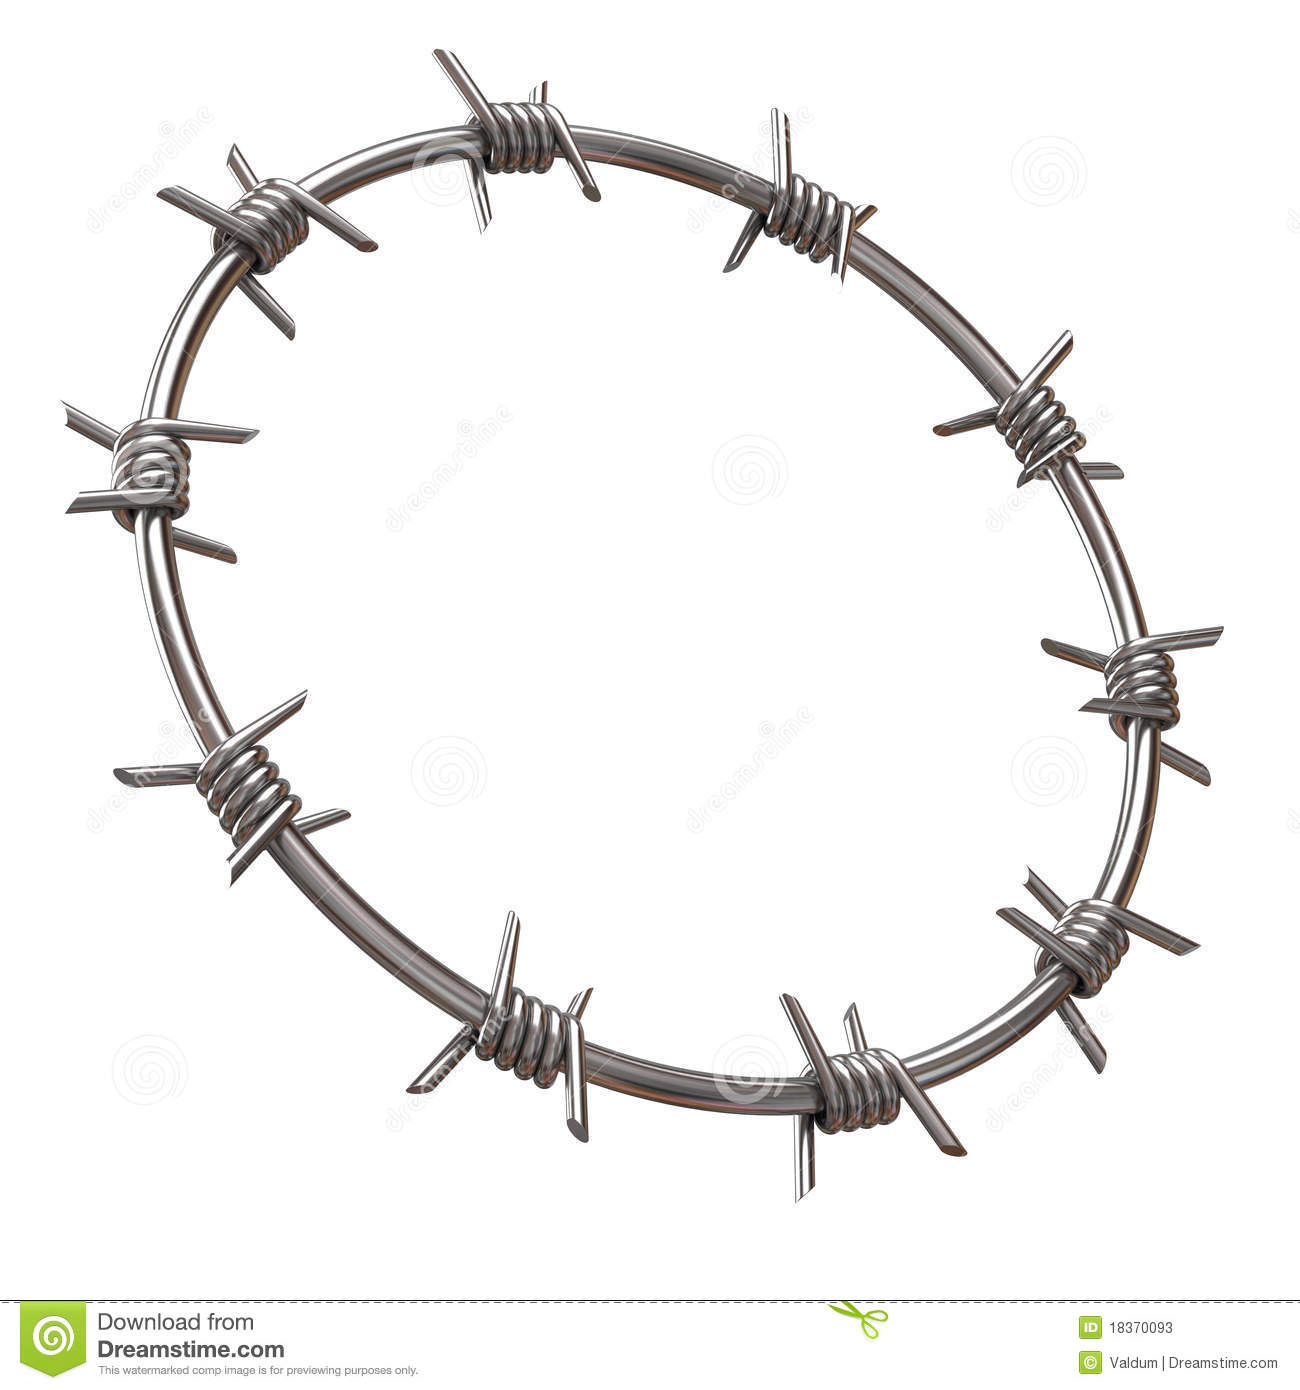 Barbed wire circle clipart suggest